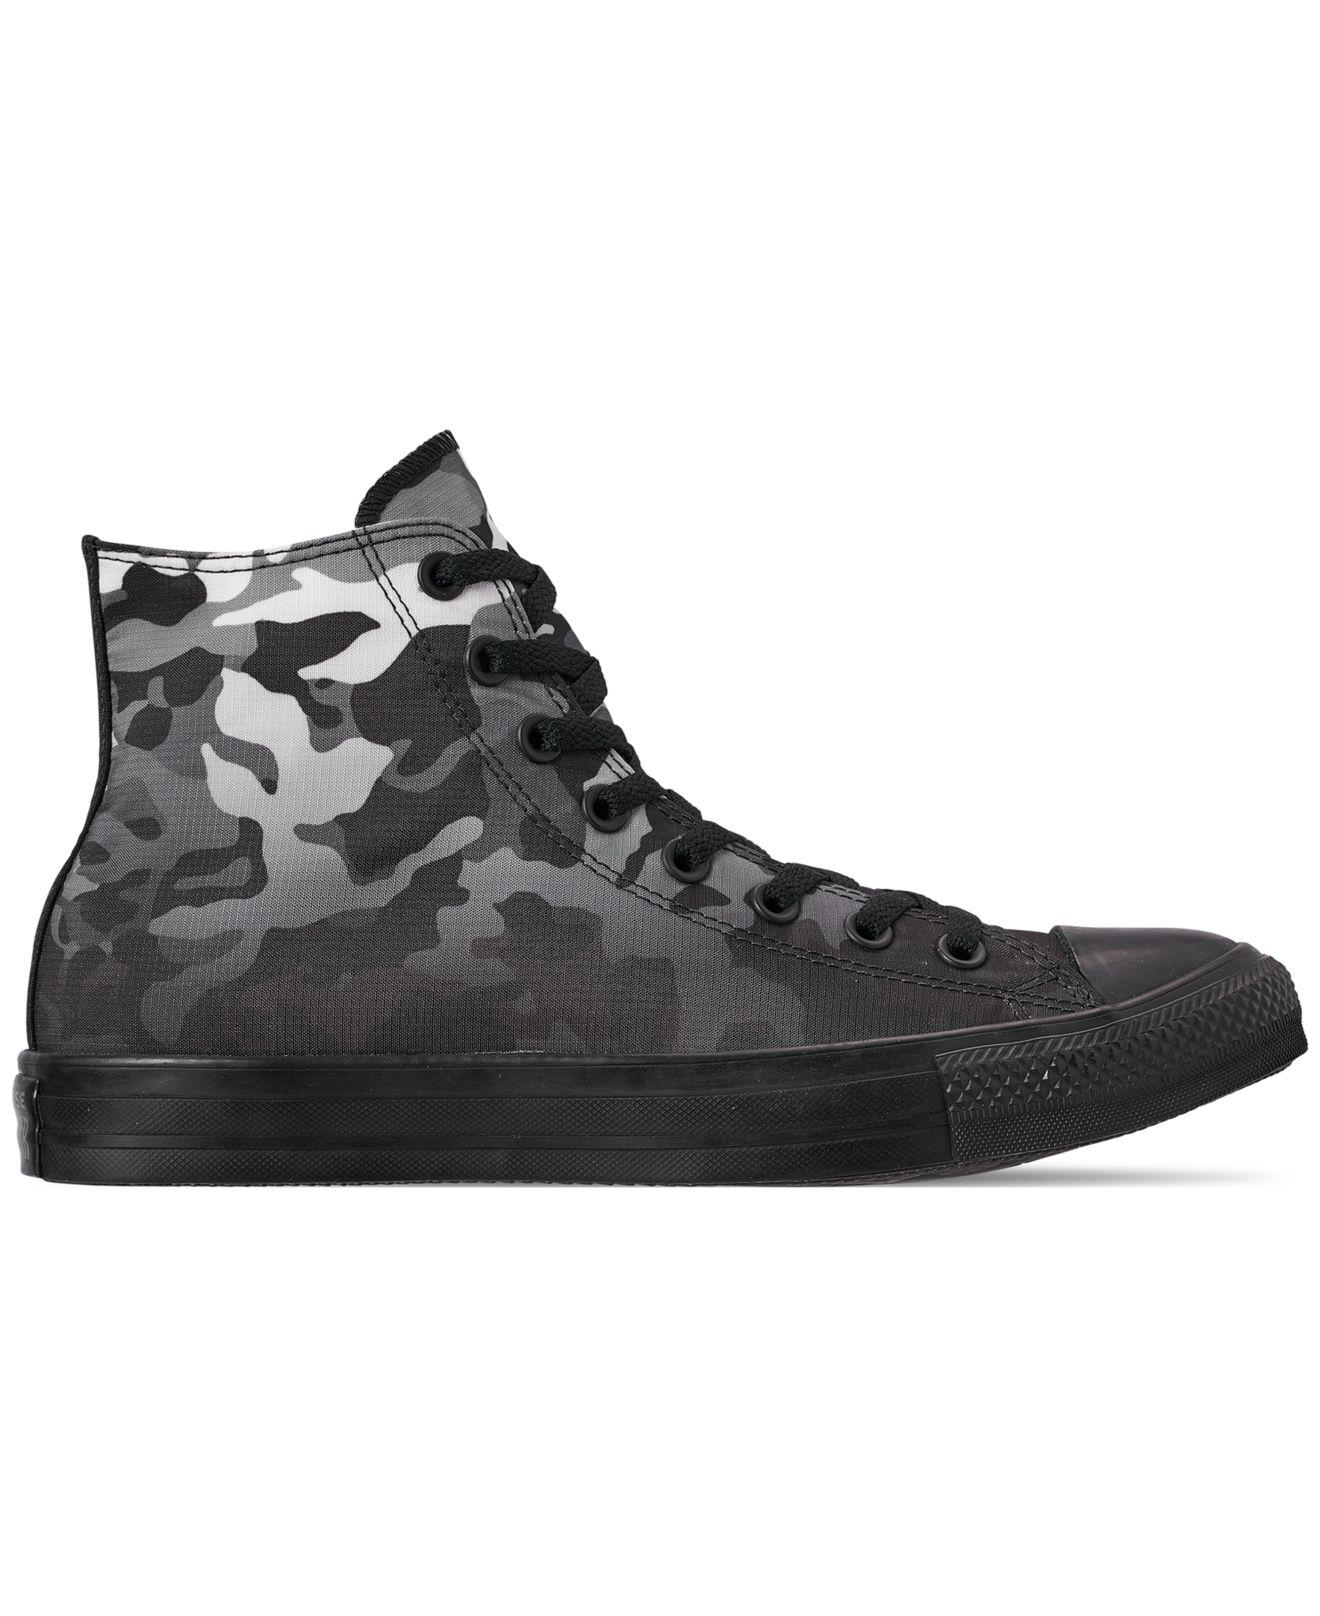 4217c844f495 Lyst - Converse Chuck Taylor All Star Gradient Camo High Top Casual Sneakers  From Finish Line in Black for Men - Save 38%